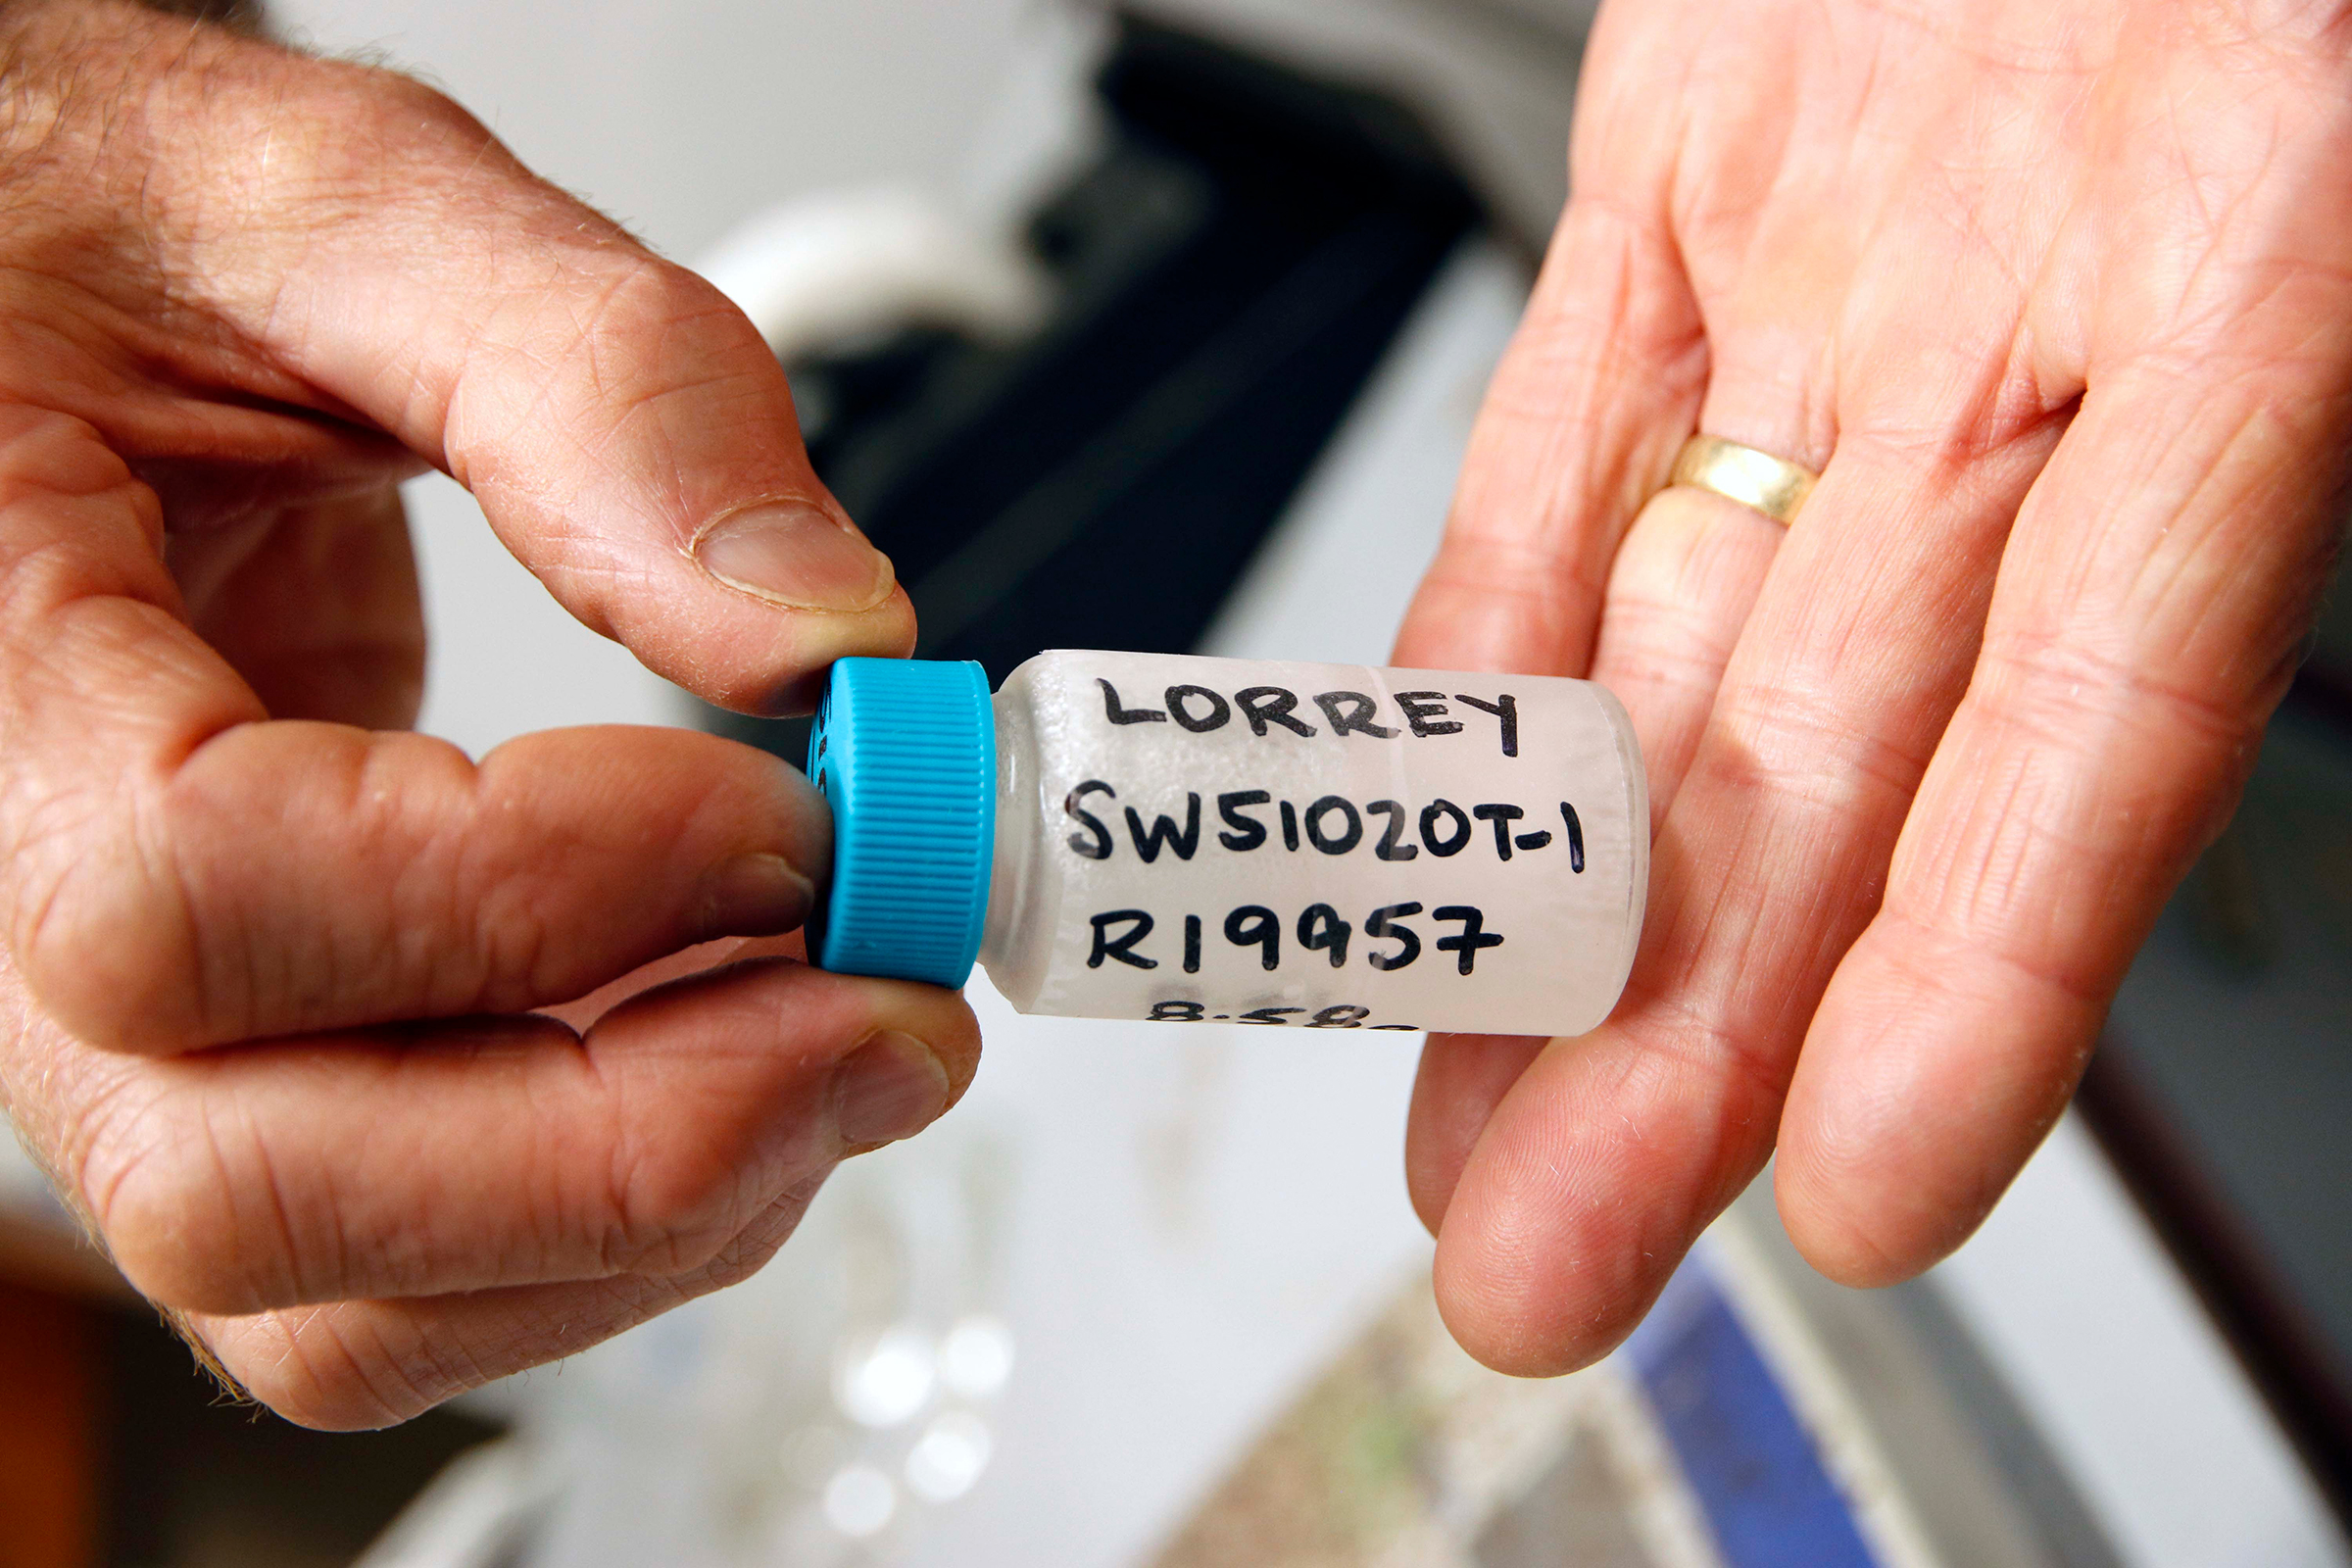 Cellulose samples are then converted into benzene. Hogg adds a scintillator and places the vial into a scintillation spectrometer, which detects pulses of light every time a radiocarbon atom decays. The number of flashes enables him to calculate the sample's radiocarbon age. Photograph by Kate Evans.